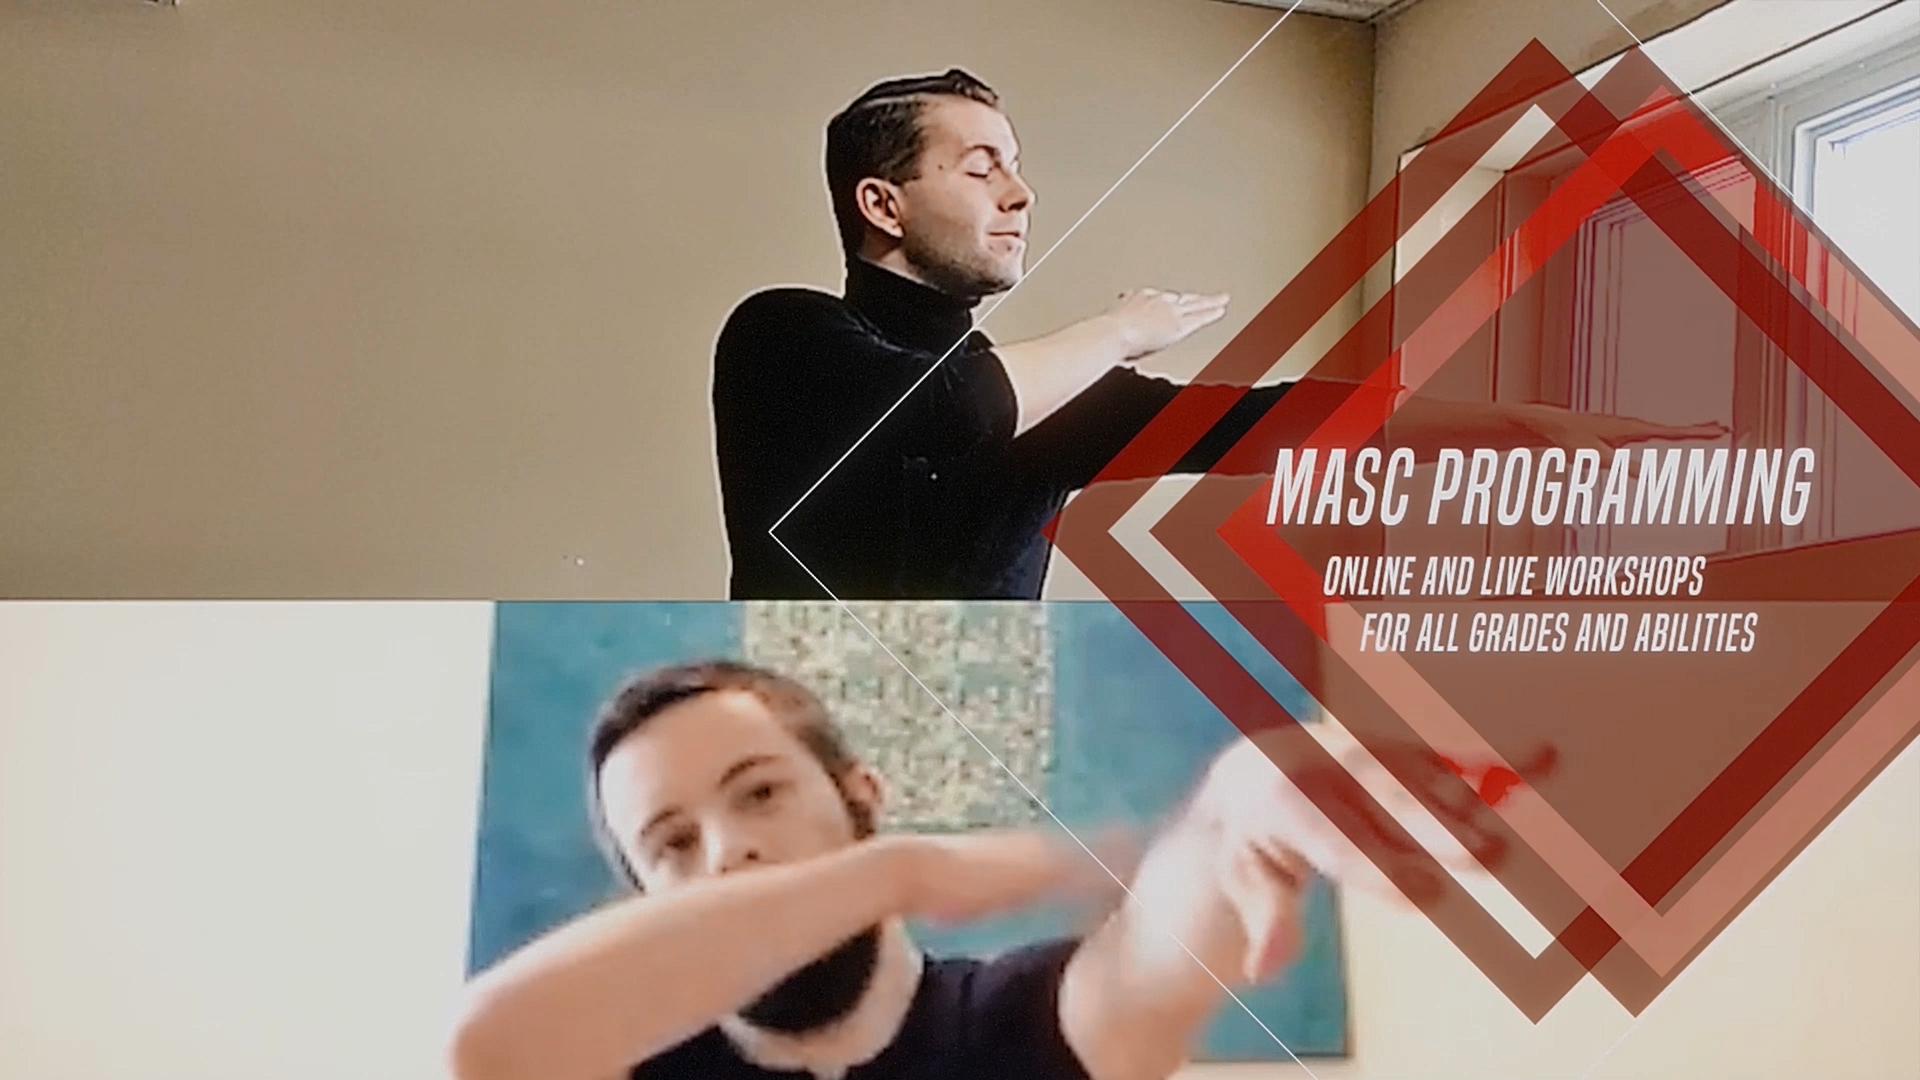 """A screenshot of two Propeller Dance instructors giving a workshop with """"MASC Programming"""" text overlaid."""